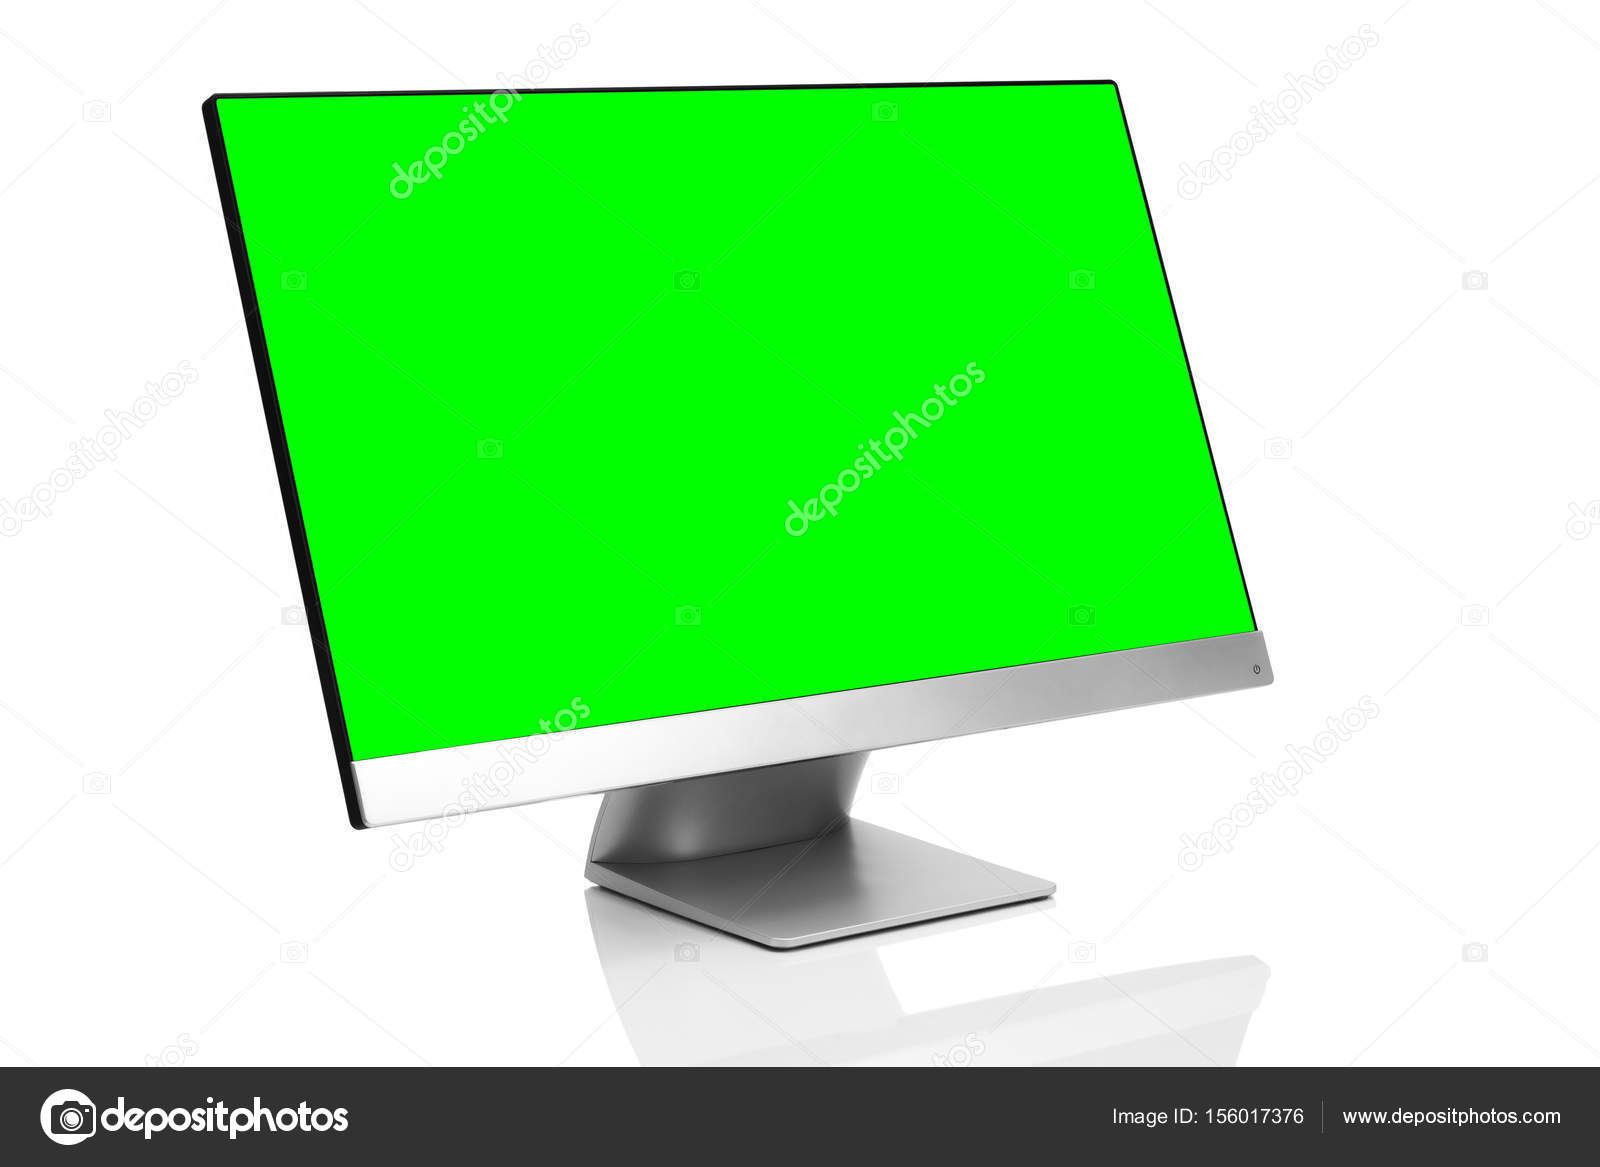 Sleek Modern Computer Display With Blank Green Chroma Key Screen Front Side View Tilted And Isolated On White Background Reflection Photo By